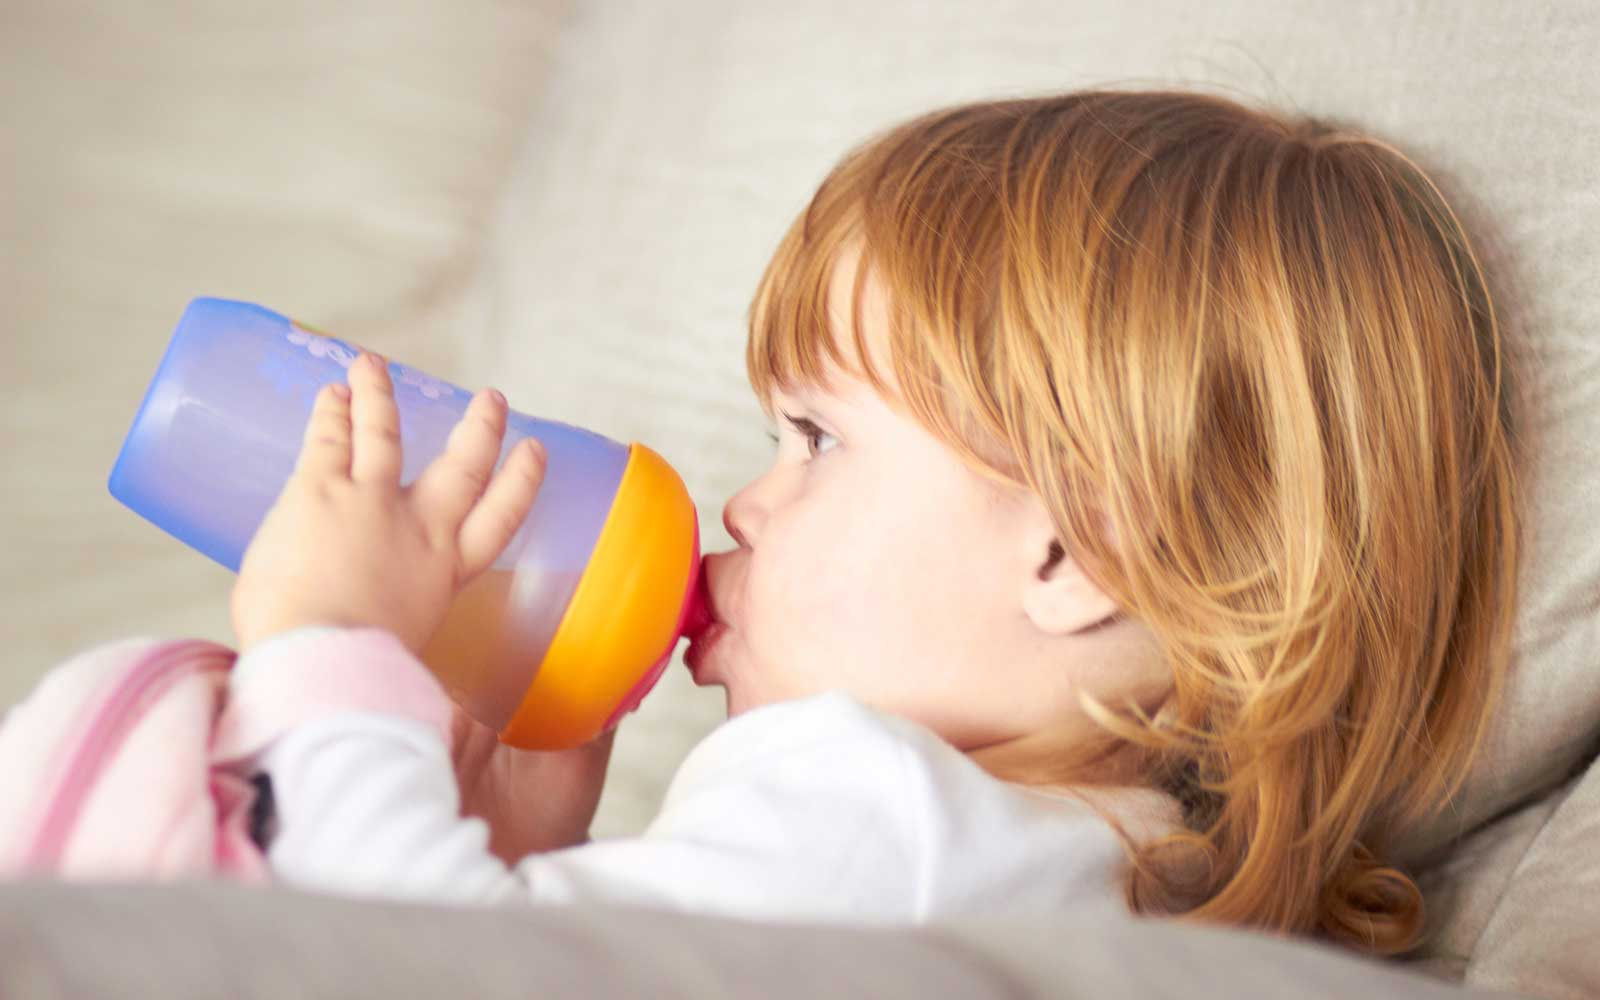 Babies should not drink juice, the American Academy of Pediatrics says